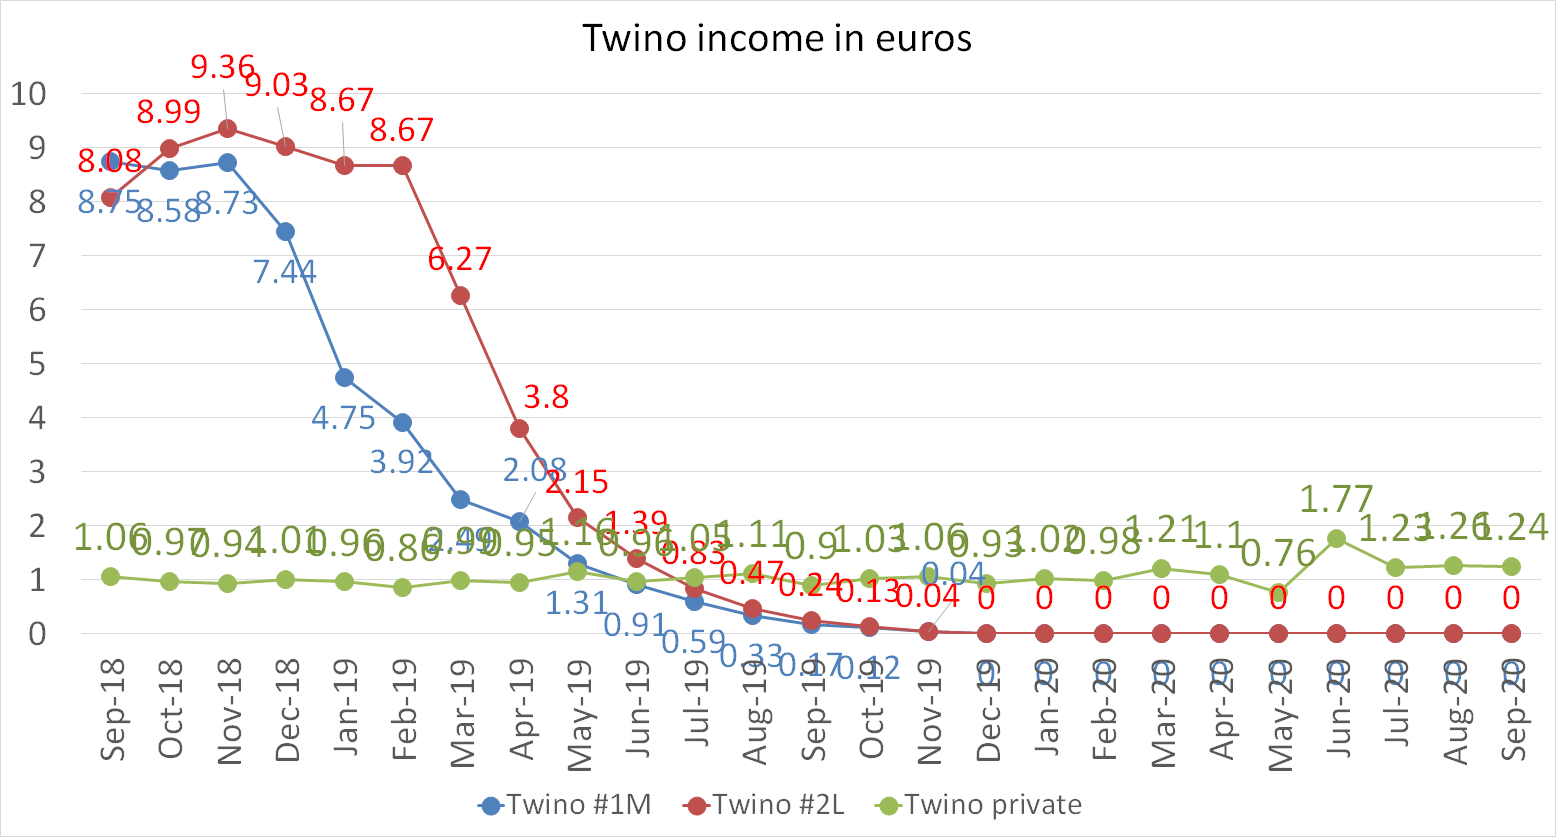 Twino income in euros september 2020